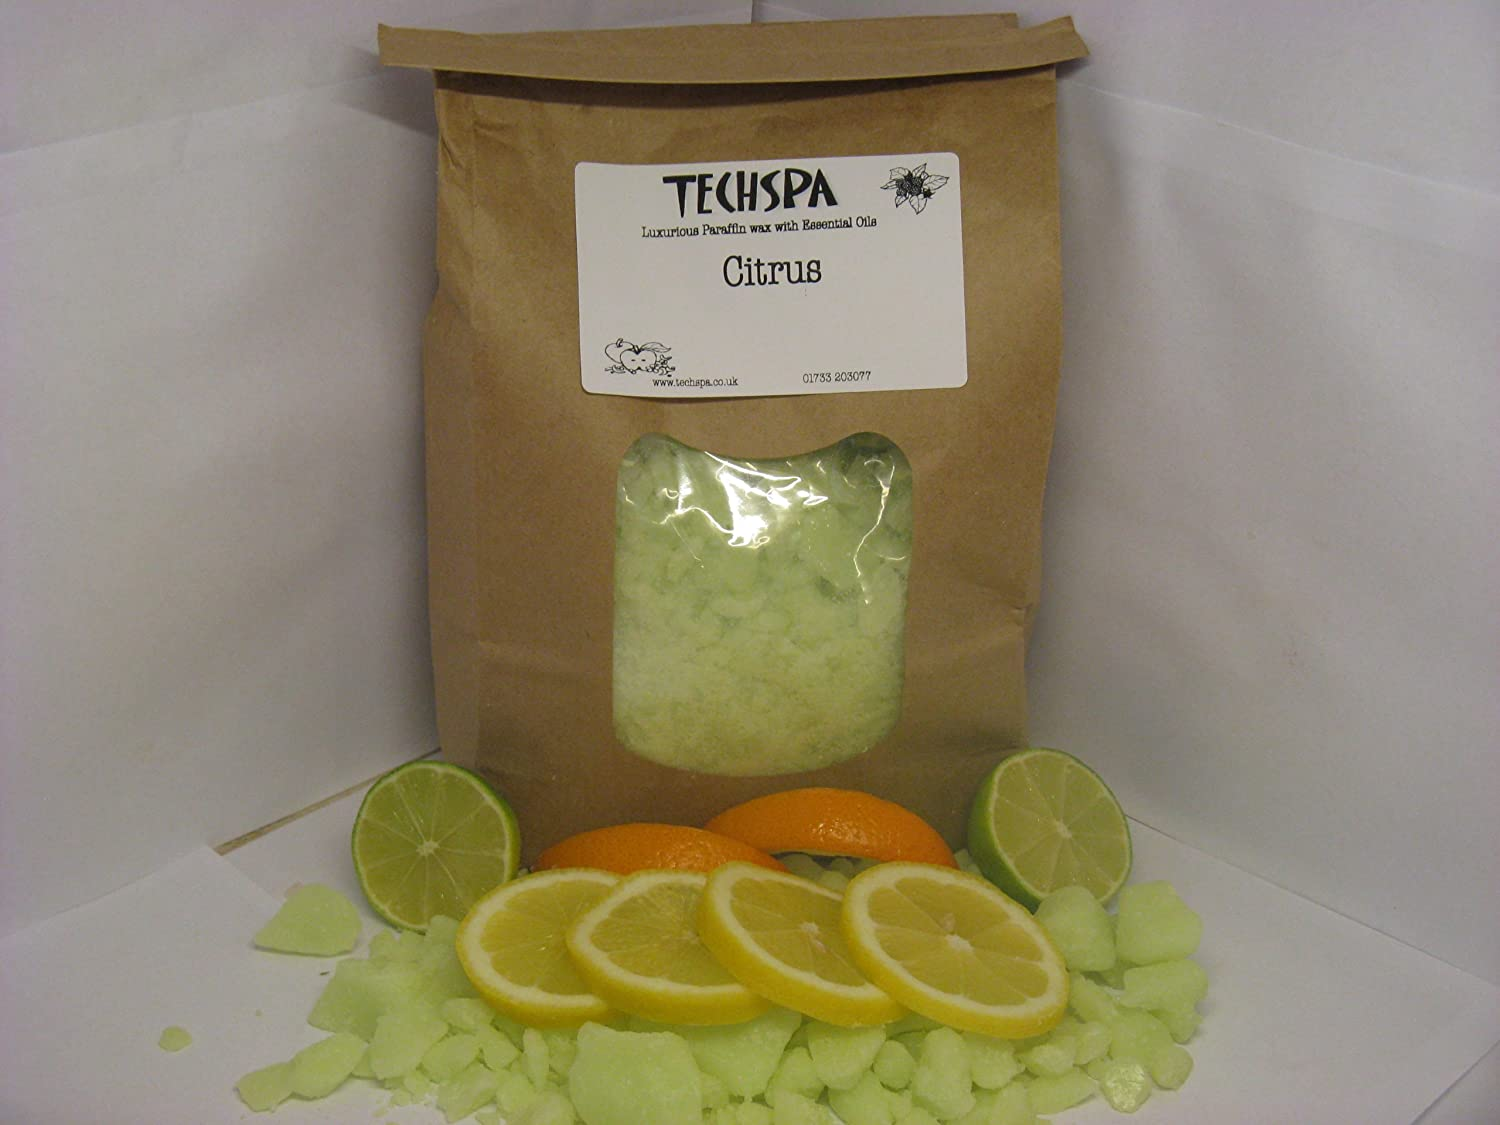 Citrus Paraffin Wax (1 kilogram - 1000 grams) Made in UK. Carantan Limited